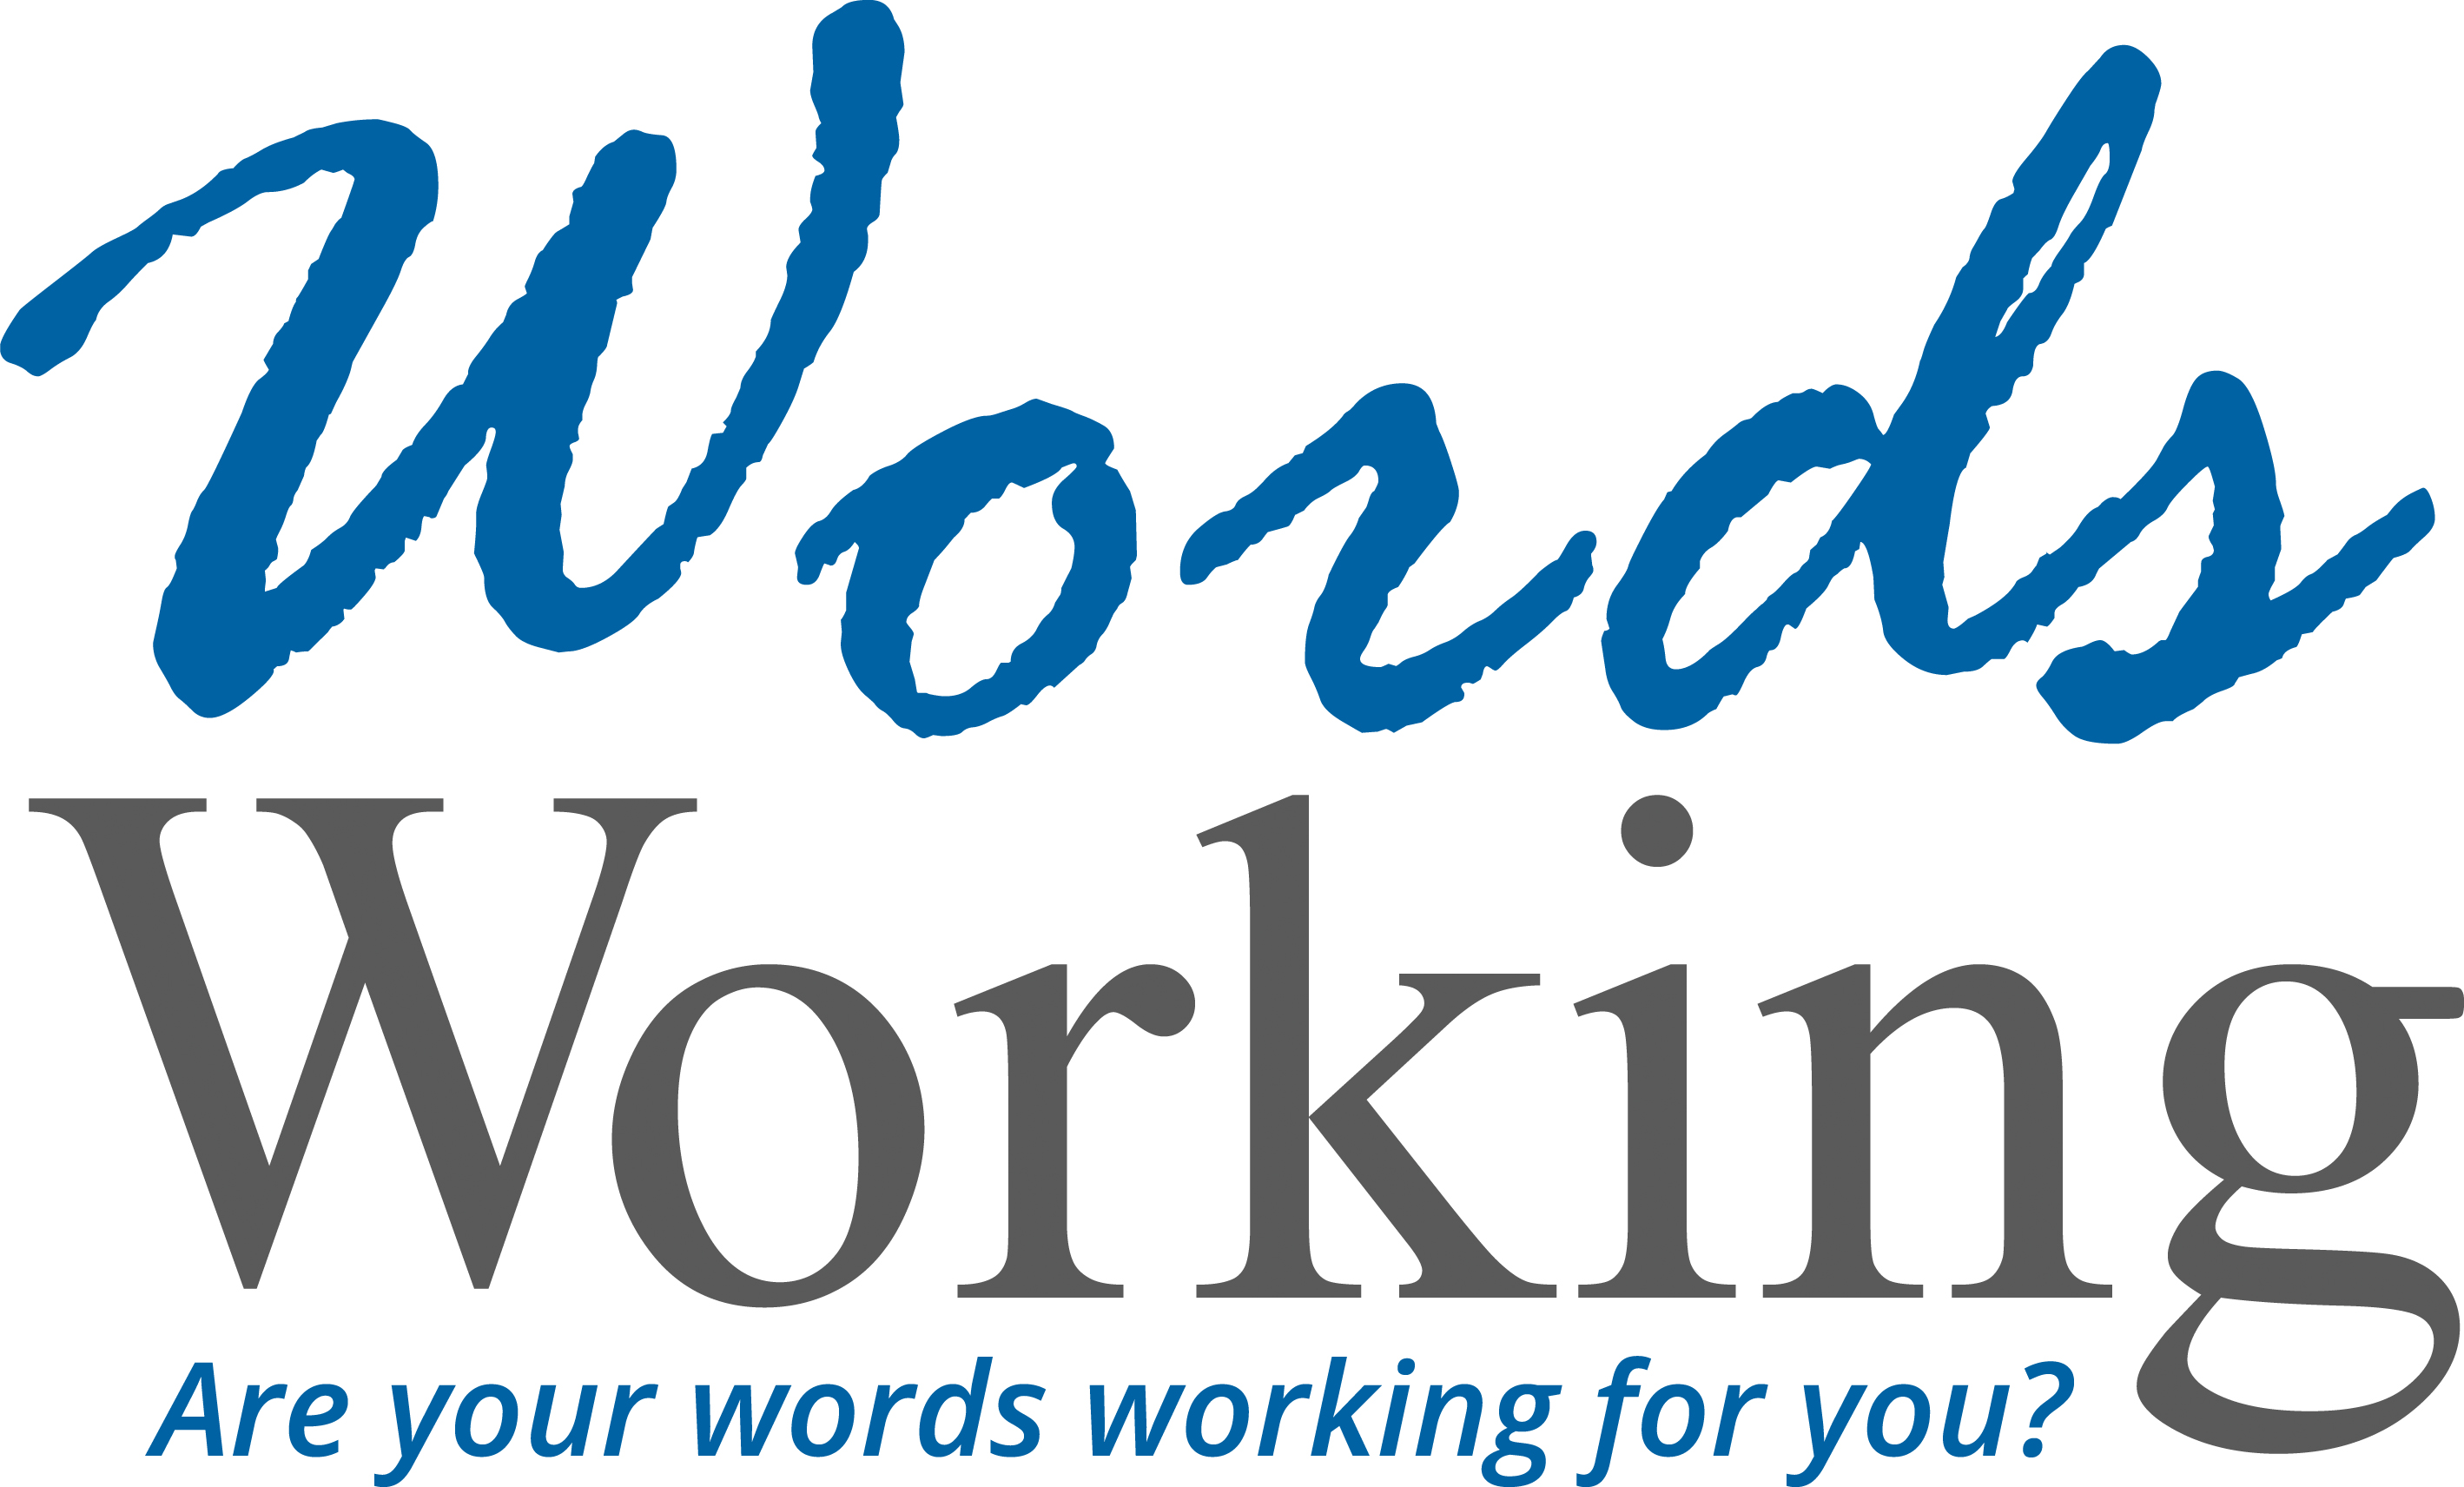 Words Working LLC